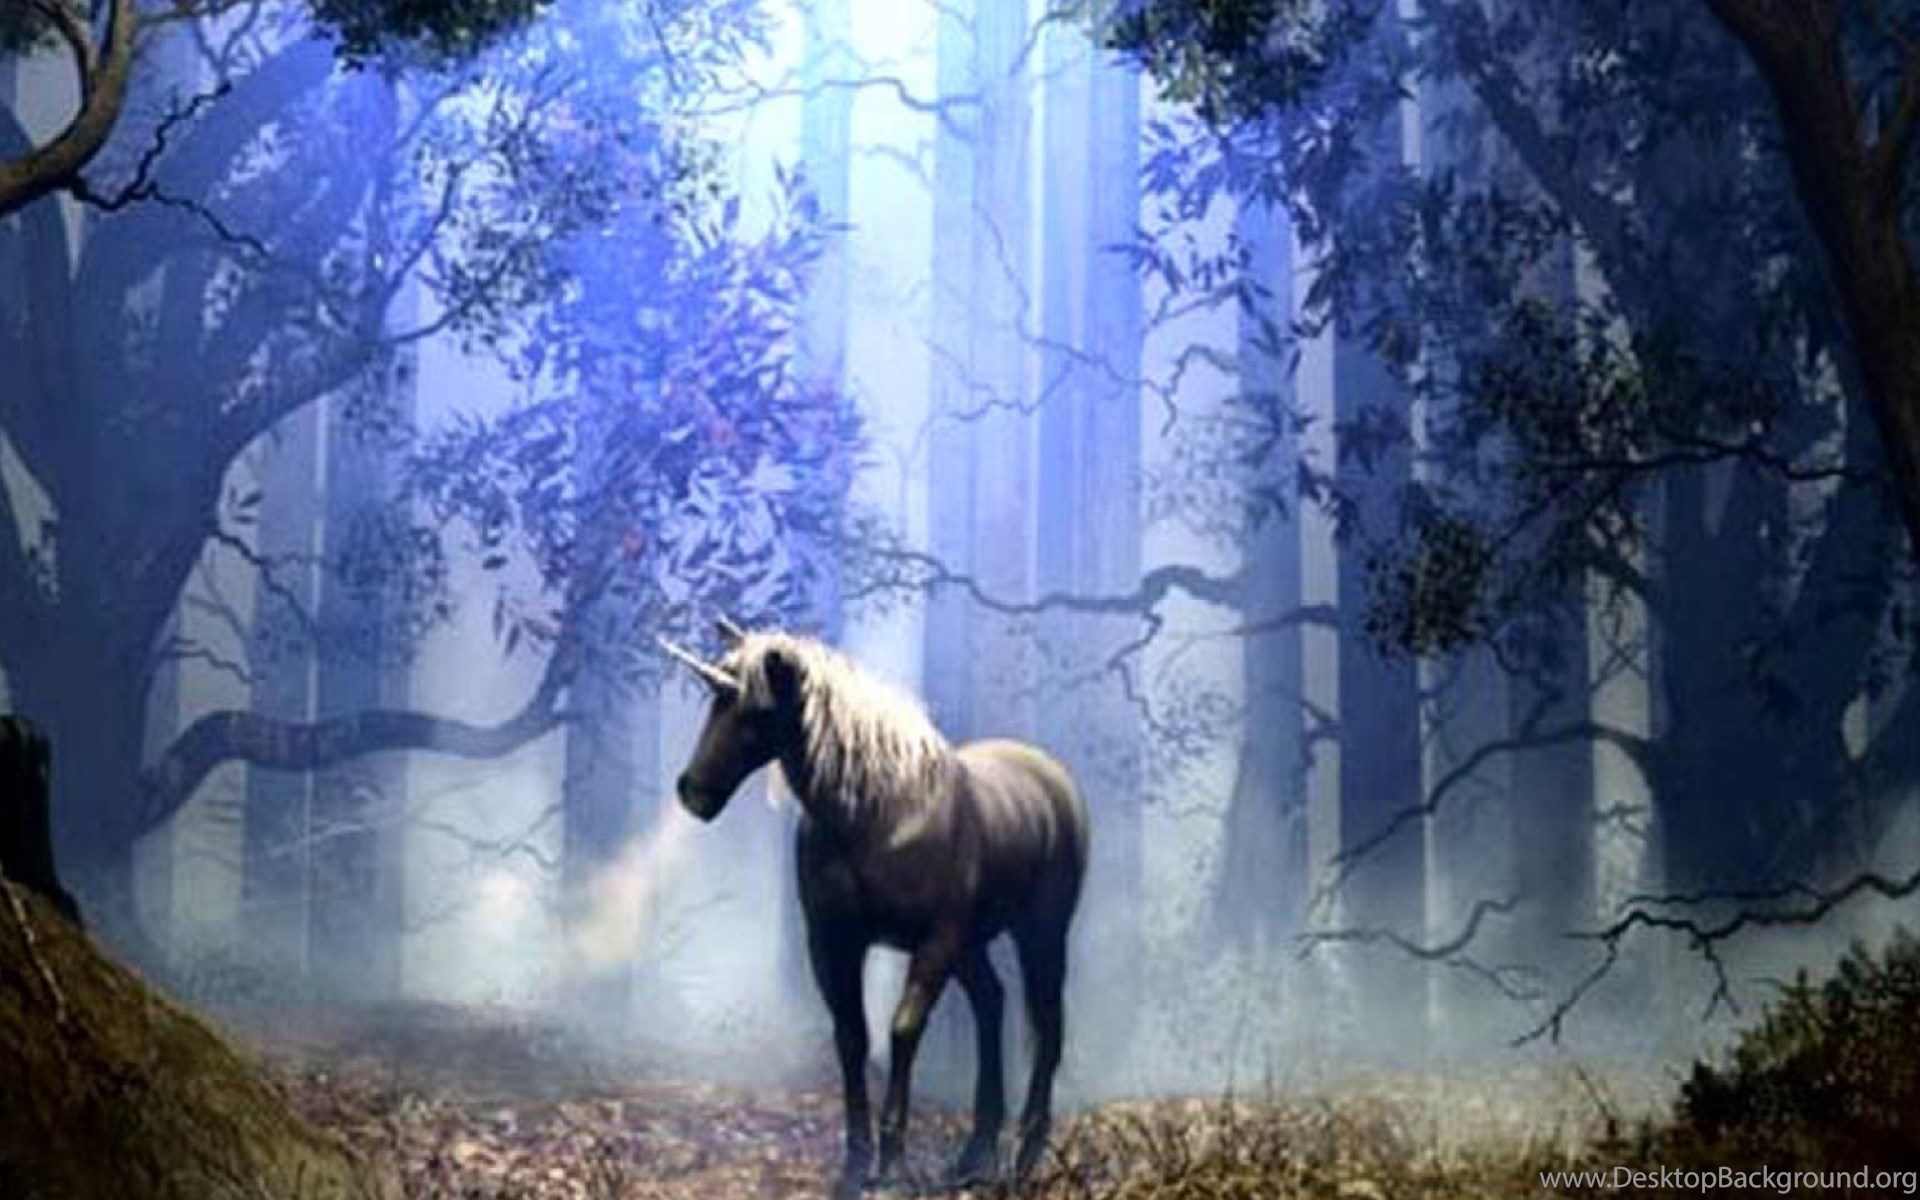 Image Detail For Fantasy Ipad Wallpaper: Fantasy Horse Wallpapers For IPad Mini 2 Desktop Background